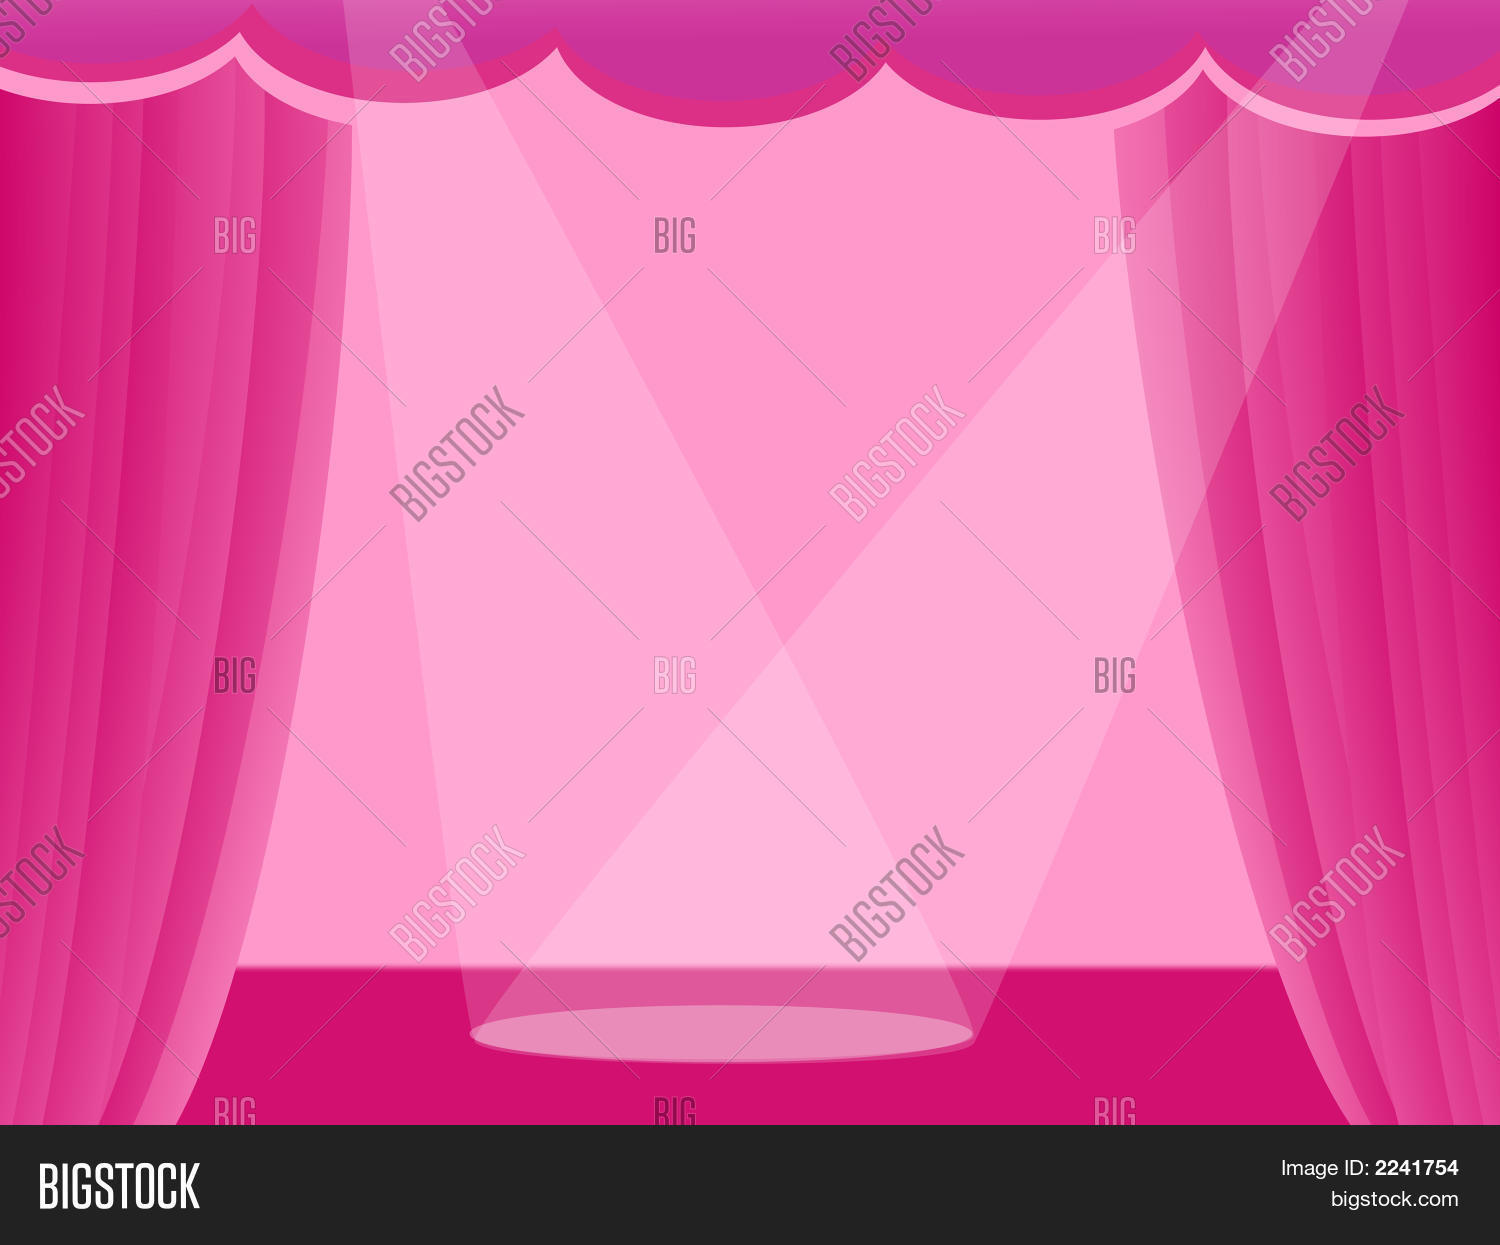 Light pink curtains - Pink Curtains With Light On Stage